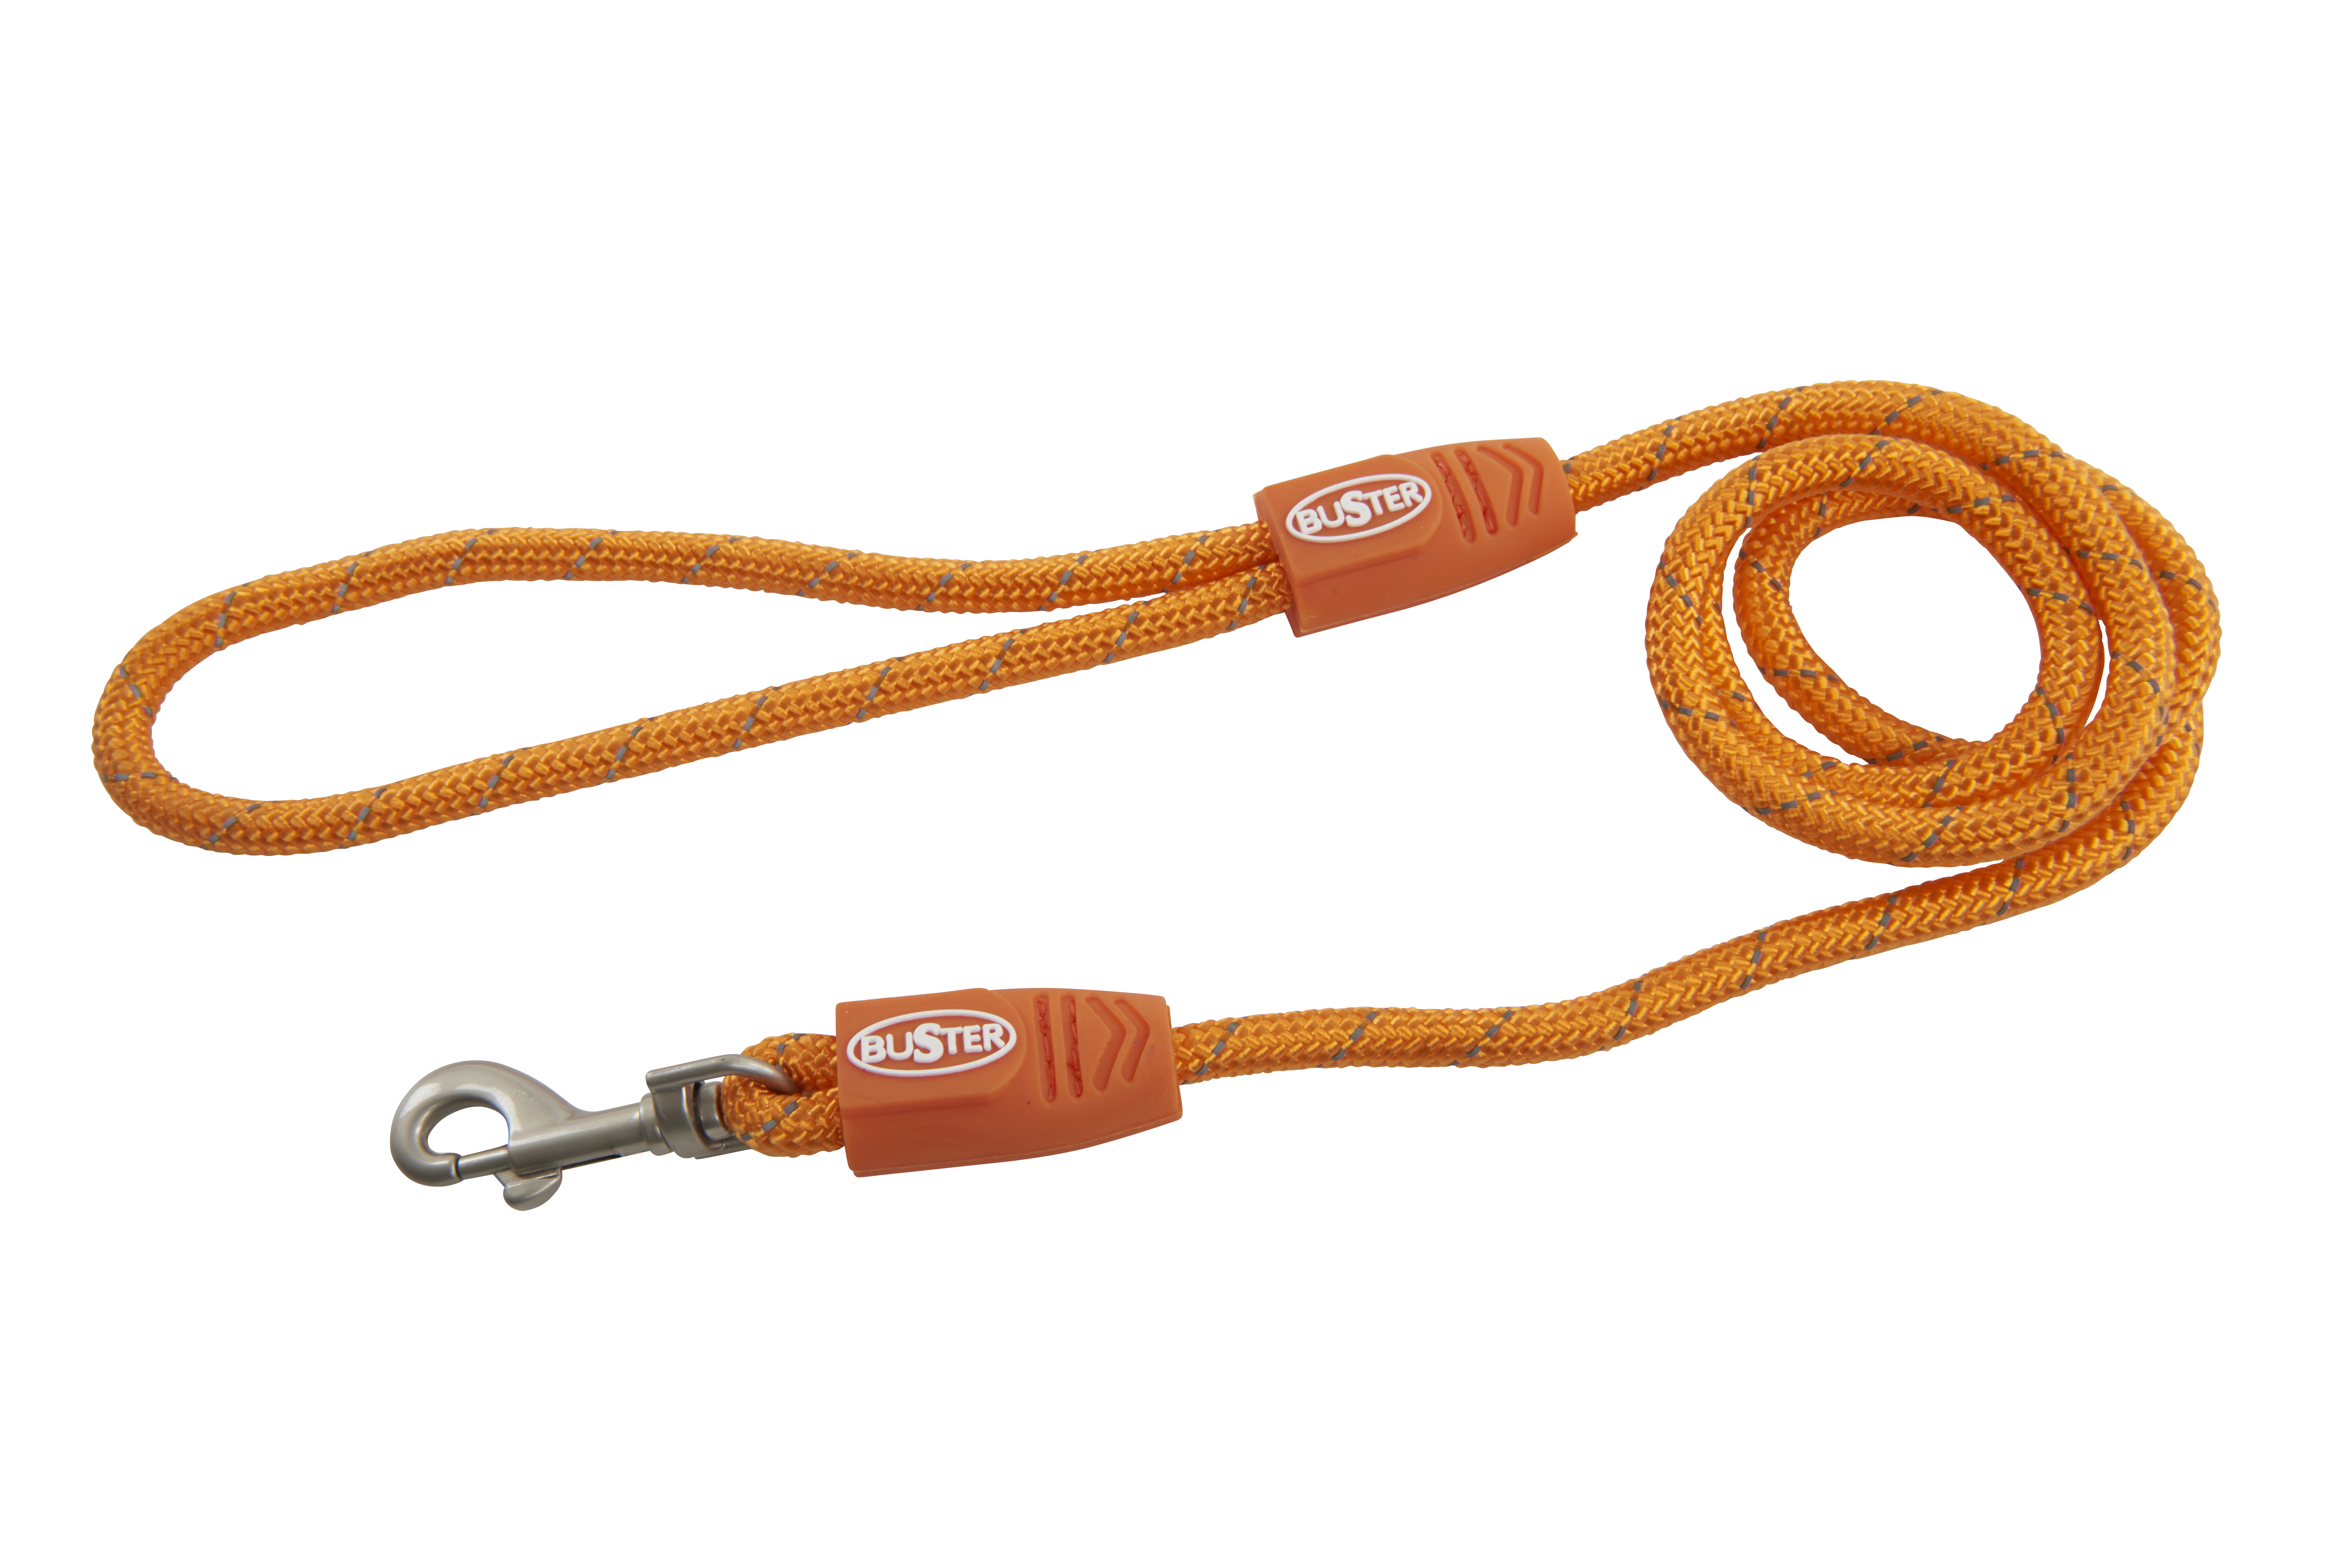 BUSTER Reflective Rope 120 cm Lead, Orange, 13mm